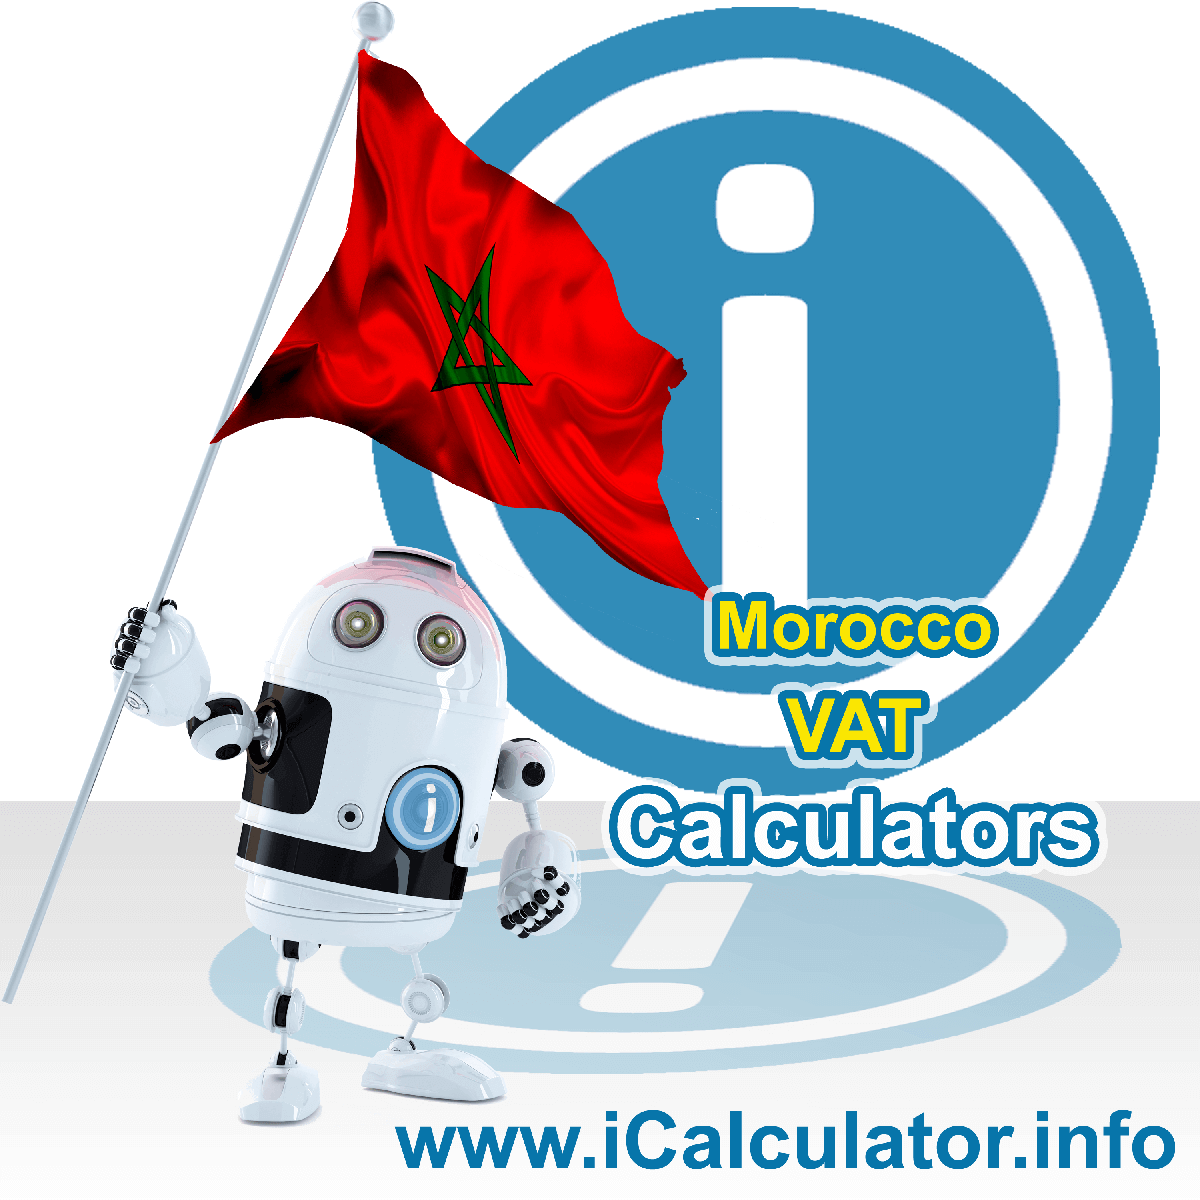 Morocco VAT Calculator. This image shows the Morocco flag and information relating to the VAT formula used for calculating Value Added Tax in Morocco using the Morocco VAT Calculator in 2020